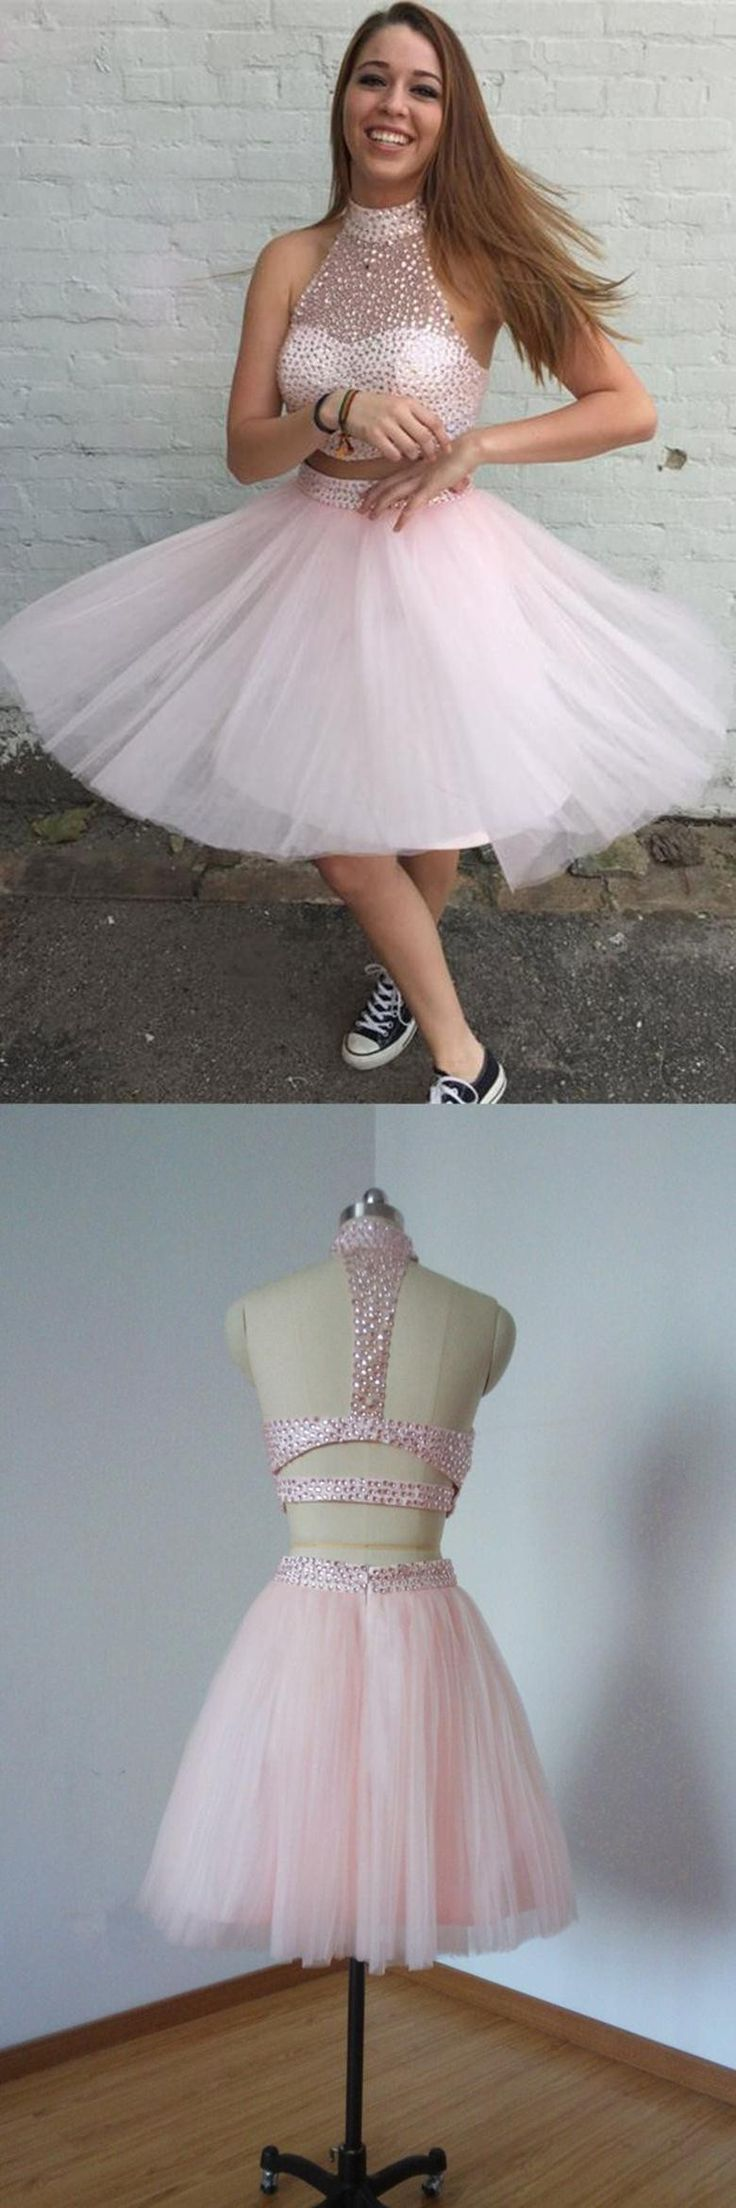 2016 homecoming dress,two piece homecoming dress,pink prom dress,sparkling…